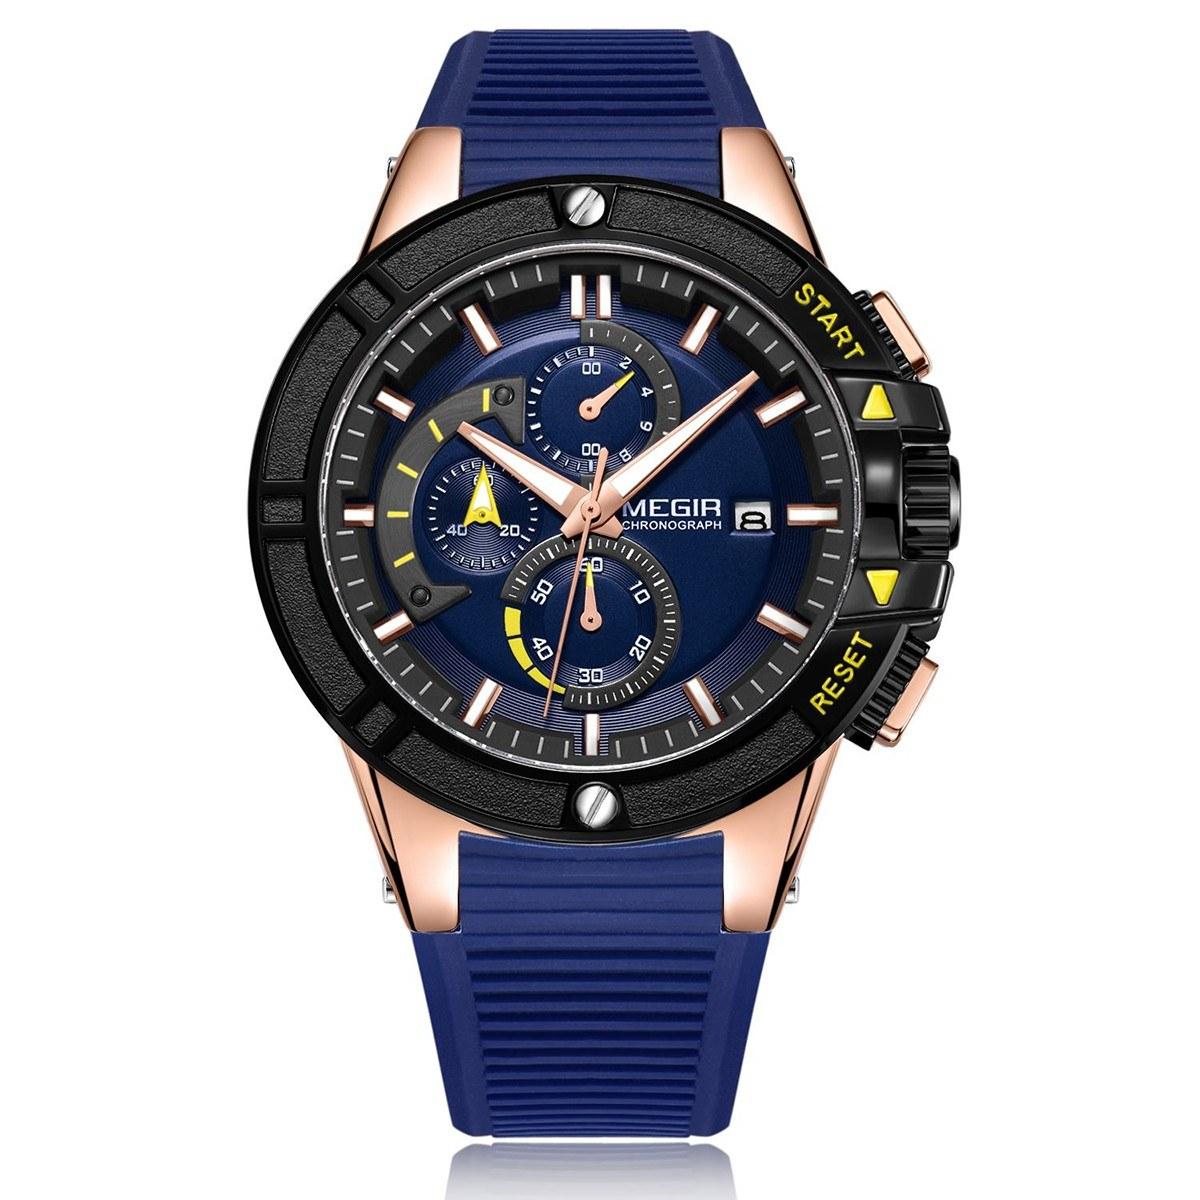 megir 2095 Business Quartz Sports Men Watch 3ATM Waterproof Big Dial Large Face Luminous Wrist Watch Microsecond Second Minute Chronograph Sub-dials Calendar Clock with Silicone Strap Band for Men